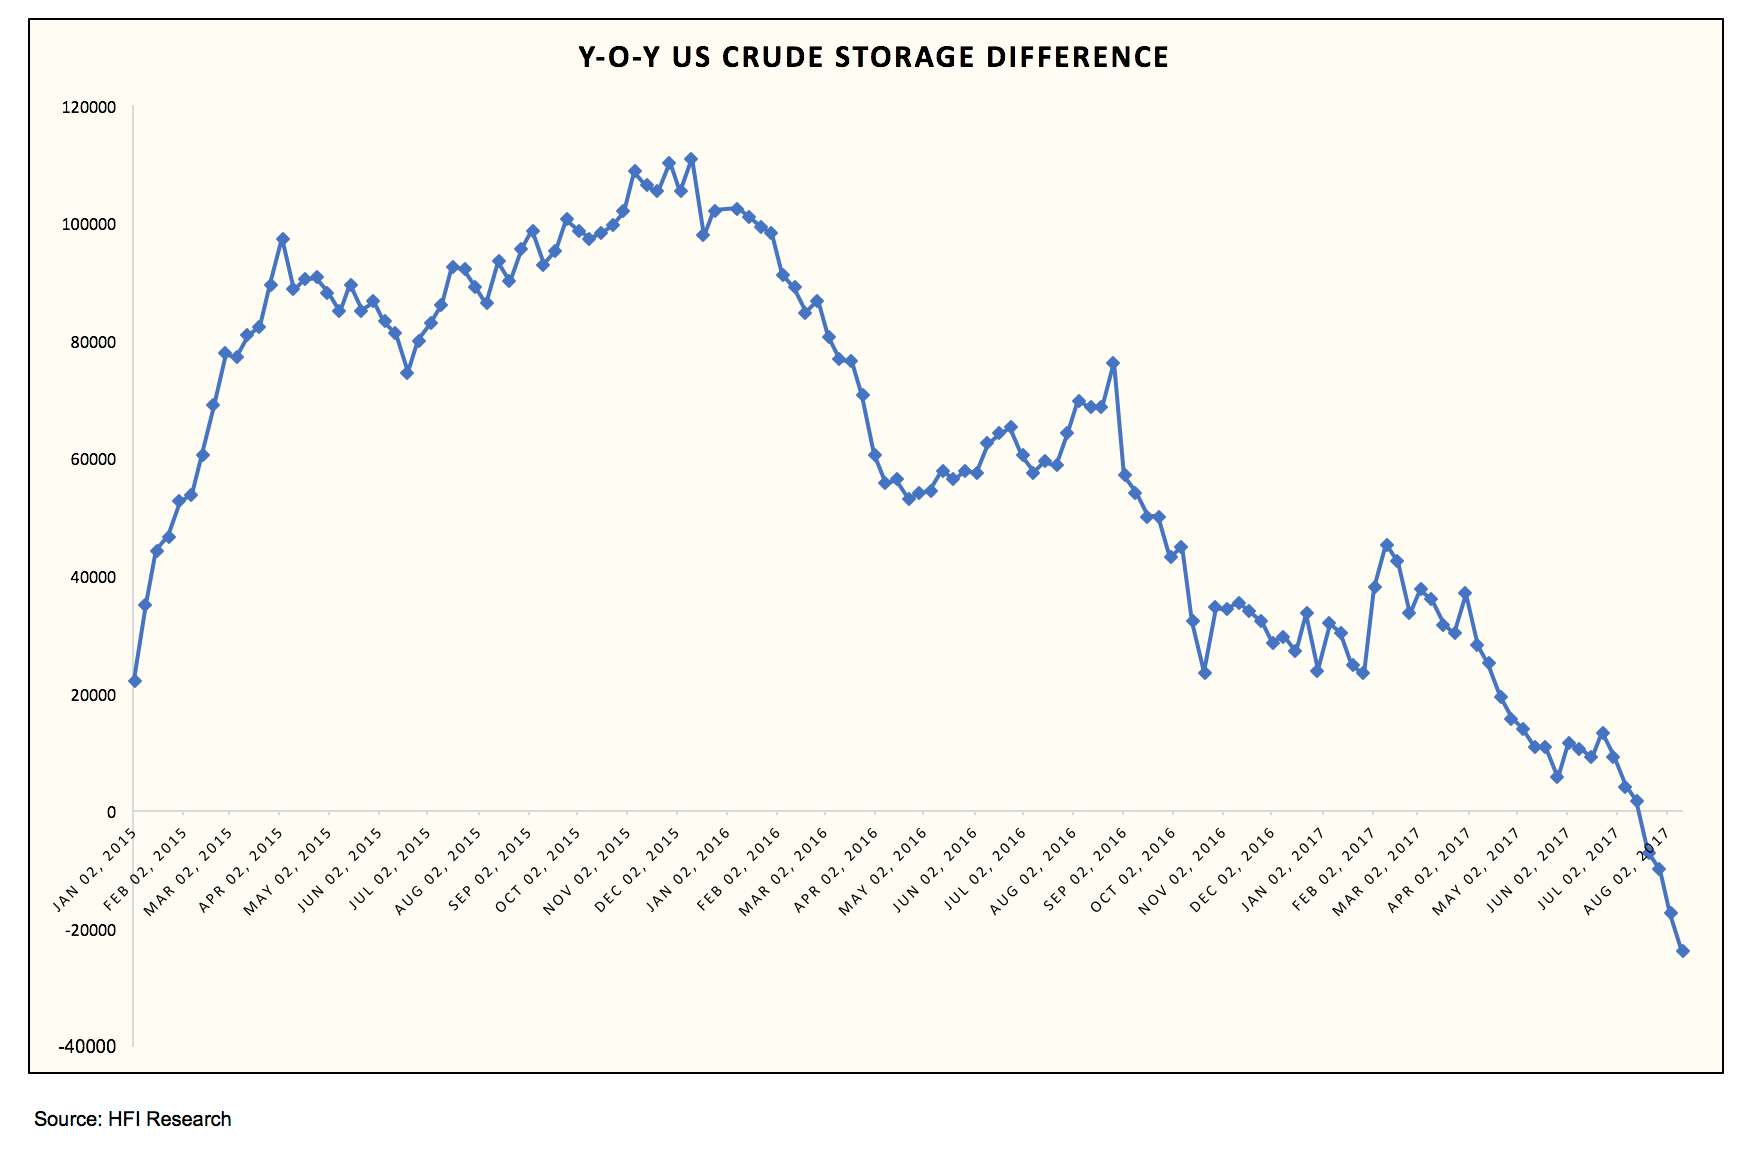 As We Had Written Back In June A Report Led Two Bad Oil Storage Reports Does Not Make New Trend Said